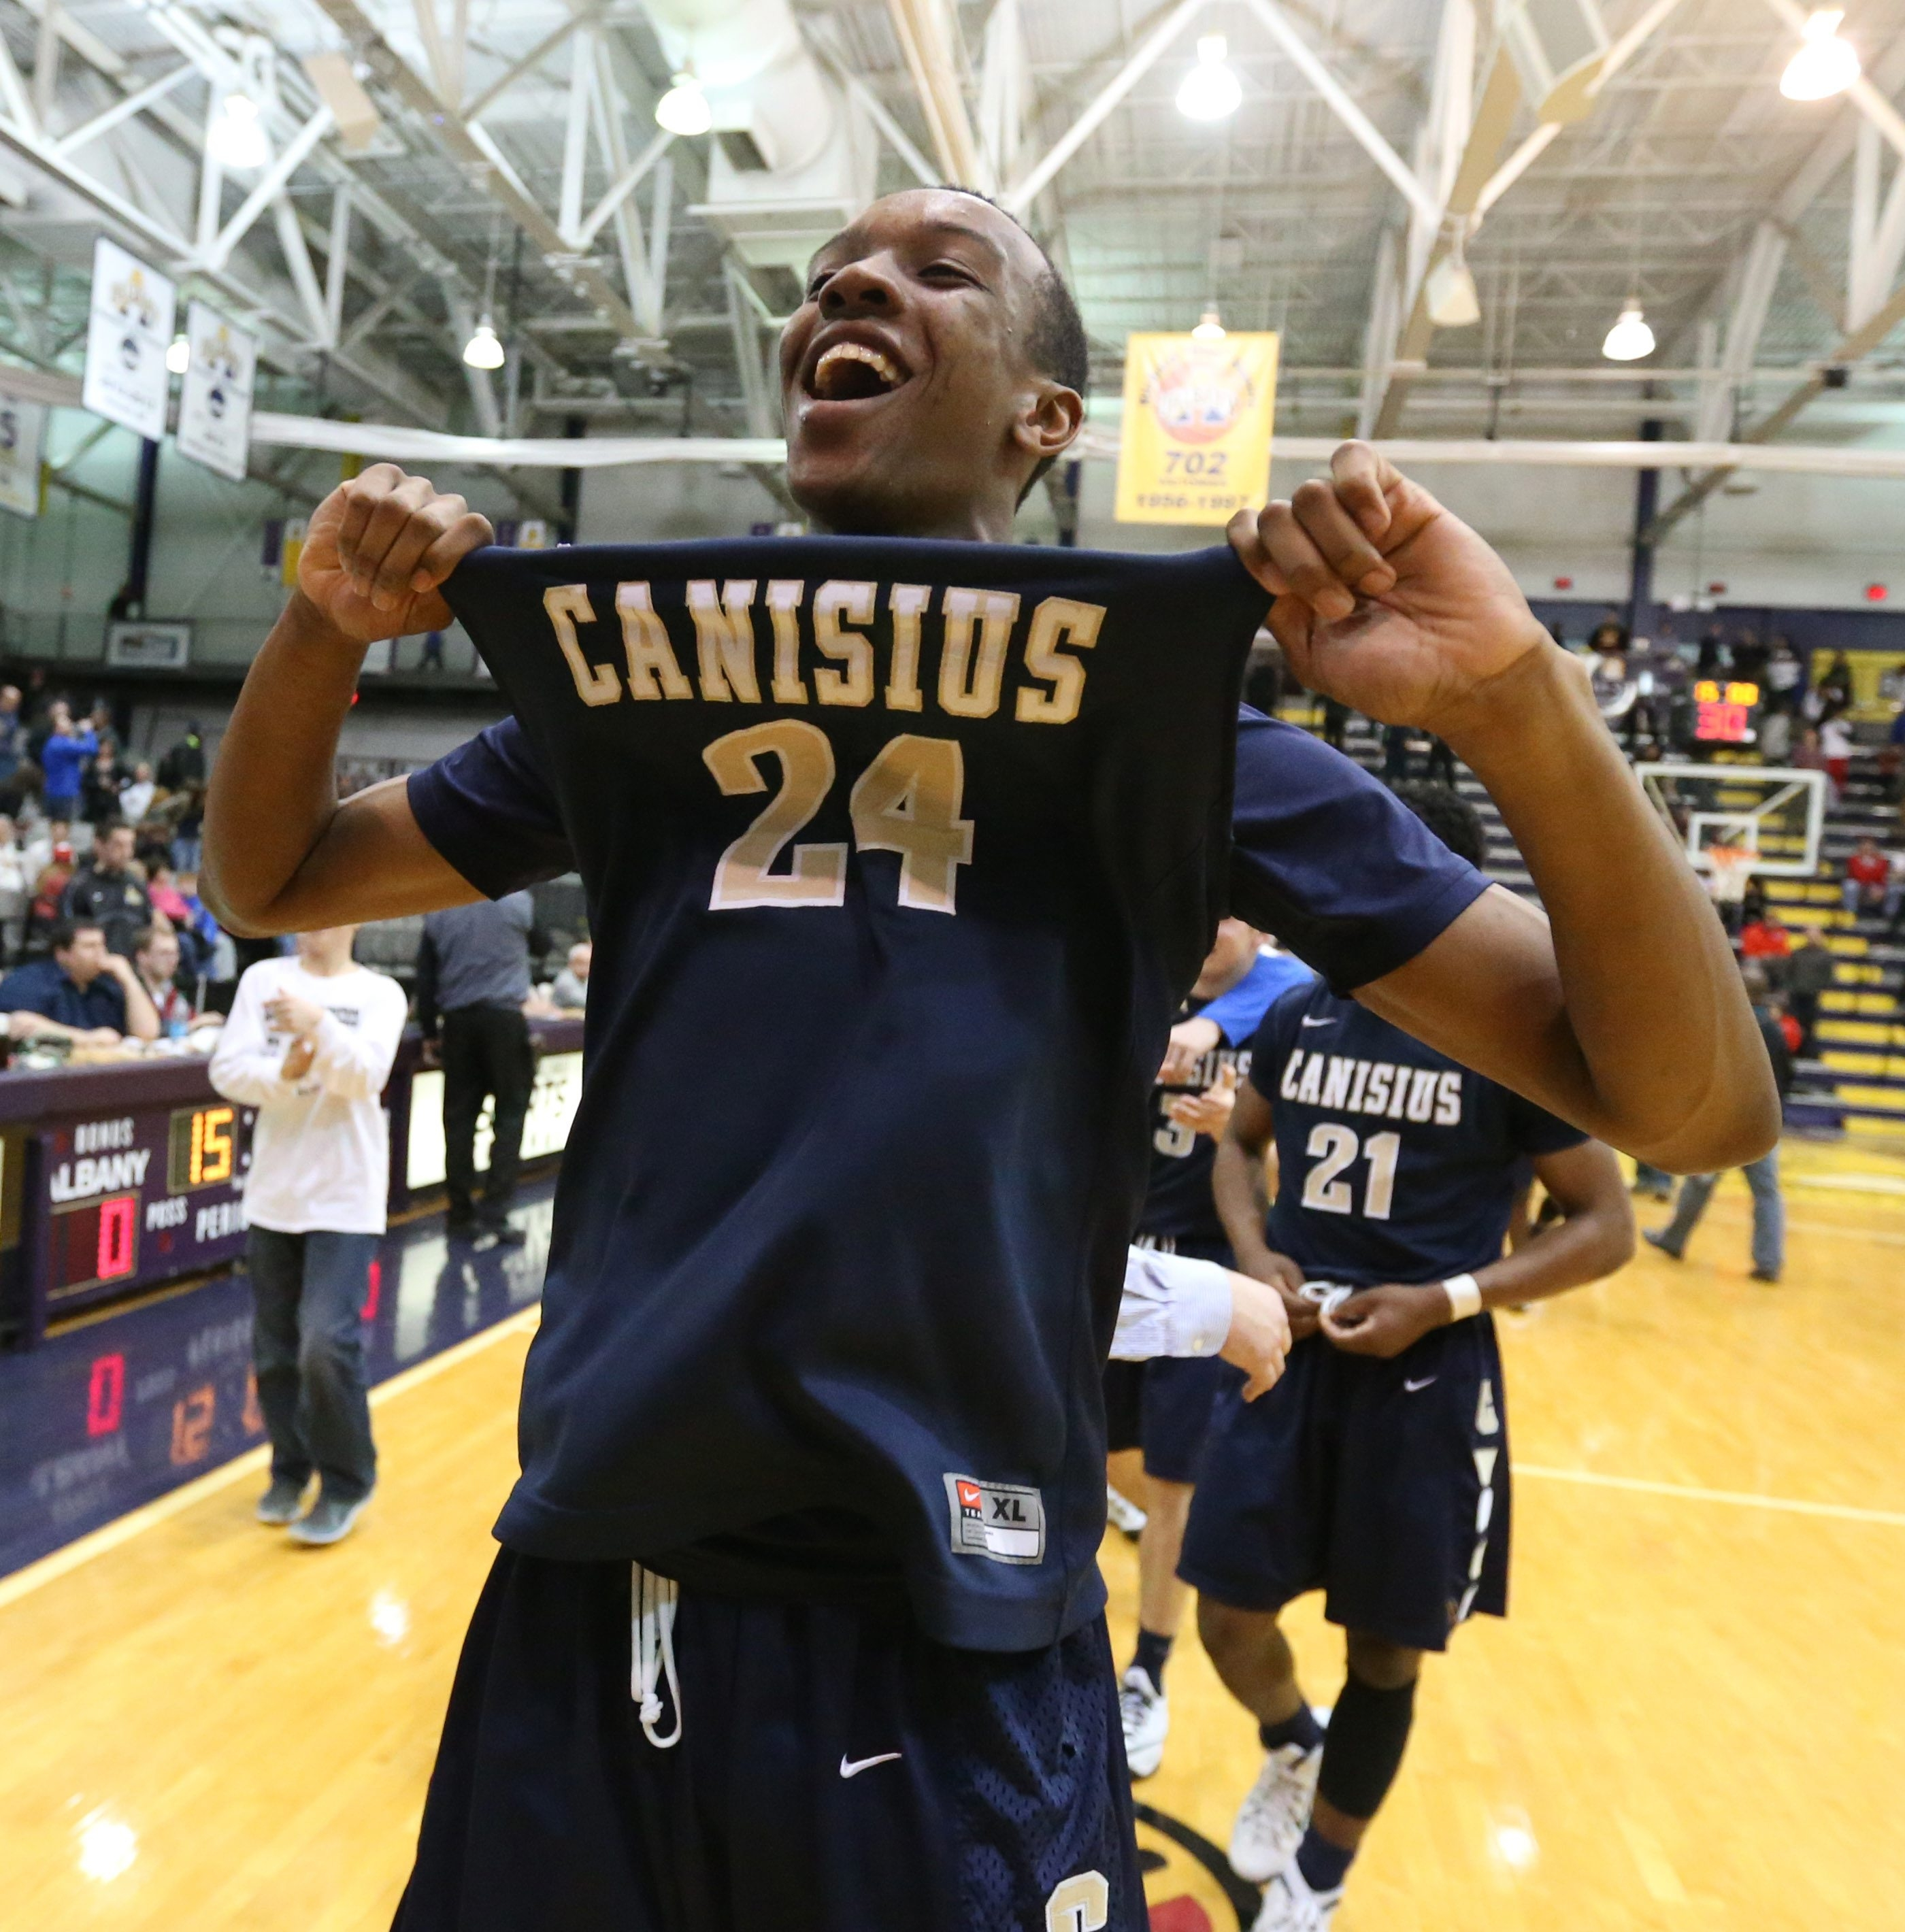 Canisius' Stafford Trueheart celebrates after the Crusaders won the NYS Federation Tournament of Champions on Saturday.